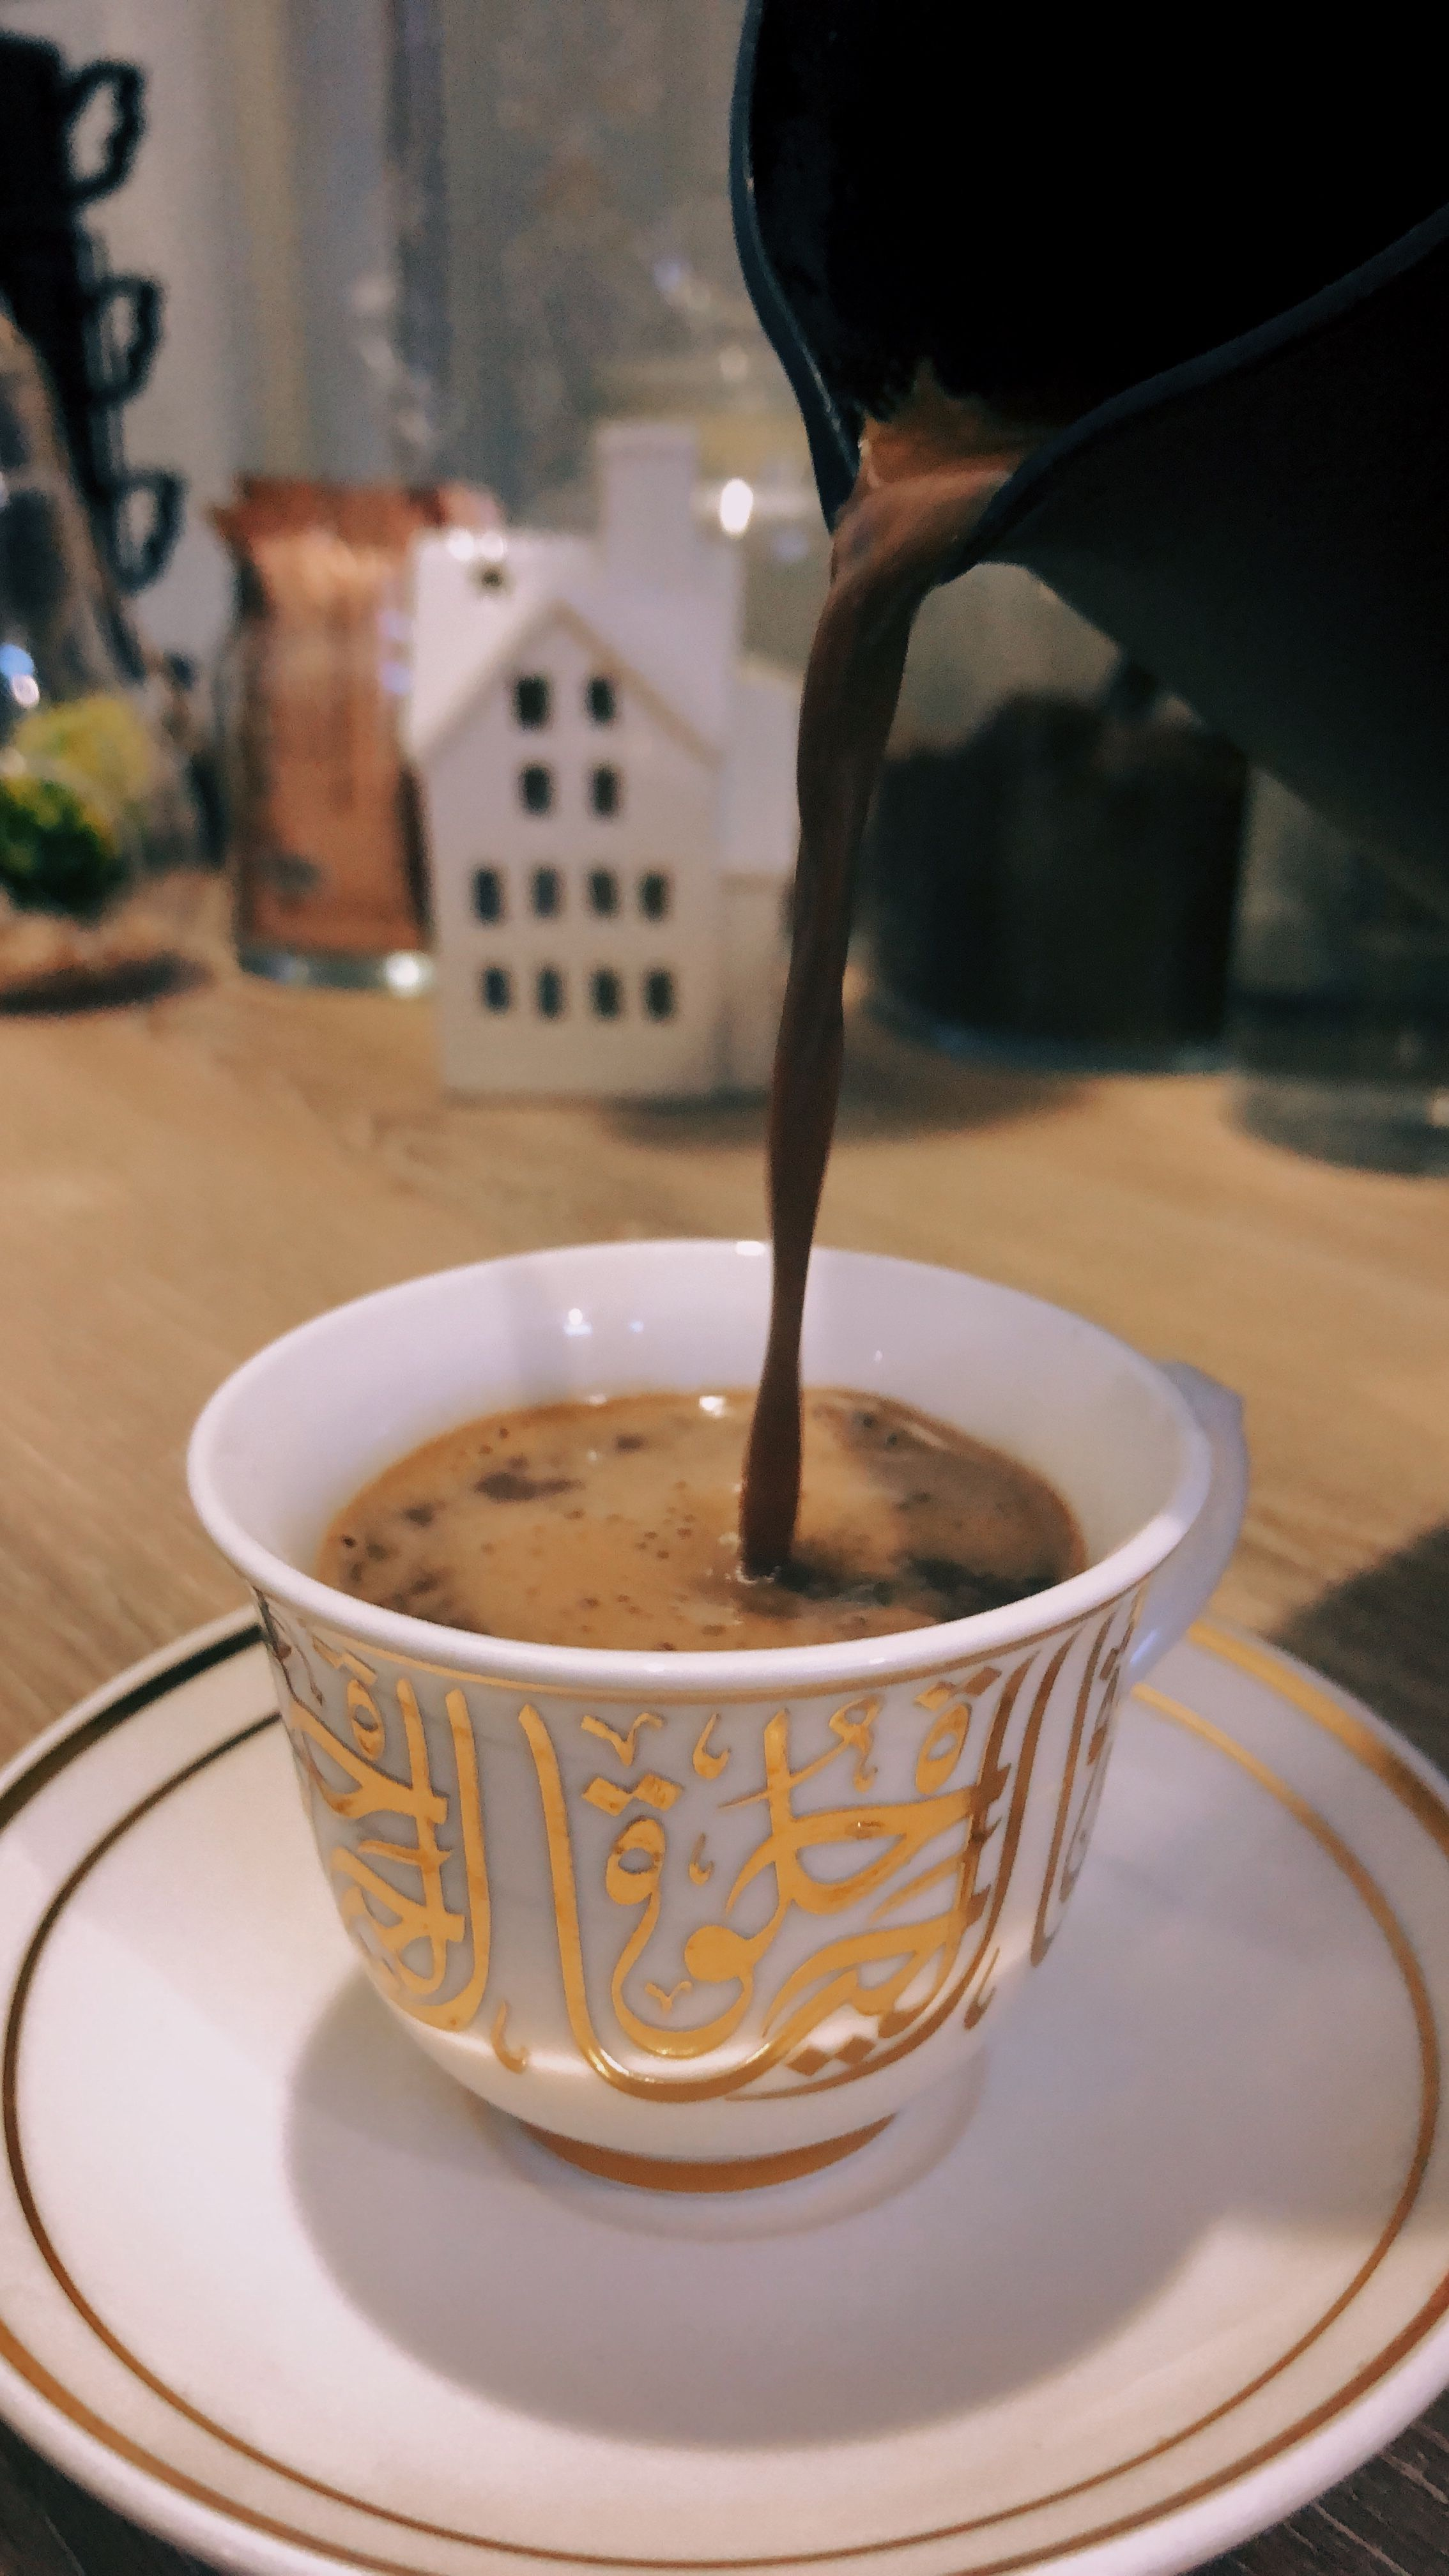 Pin By Faaauu On تصوير Food And Drink Food Cafe